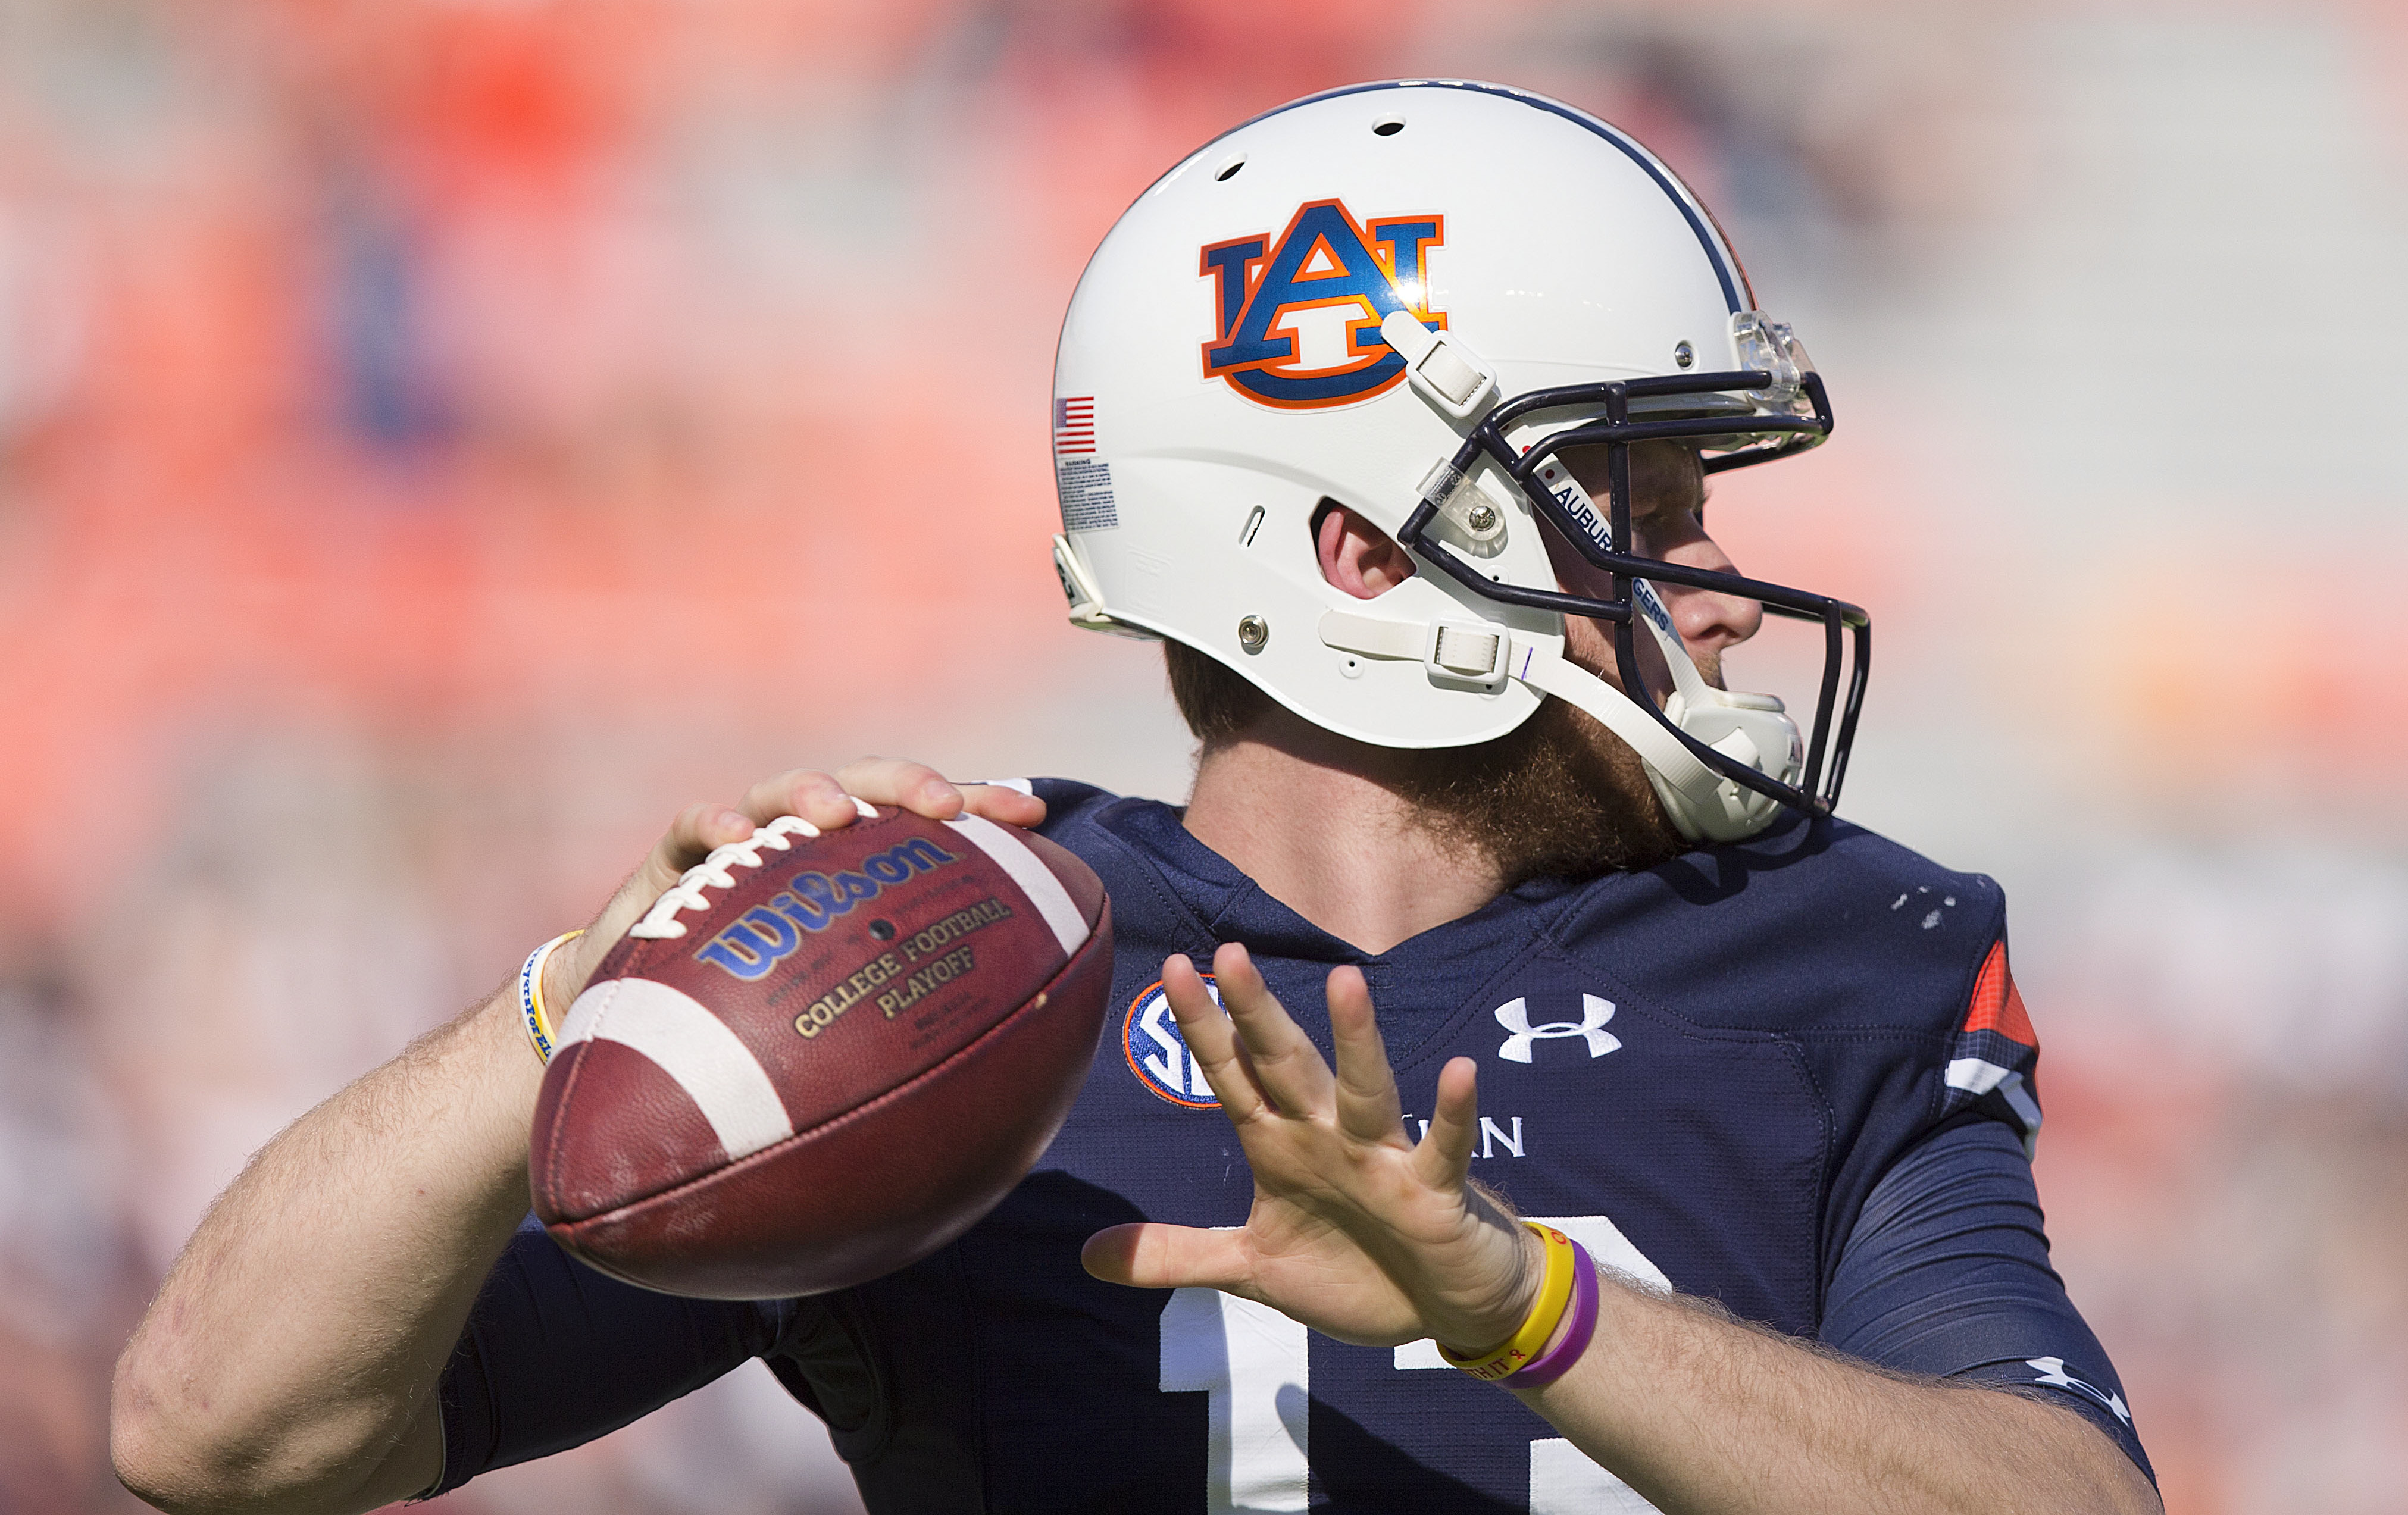 Auburn quarterback Sean White sets back pass the ball during practice before the first half of an NCAA college football game against Vanderbilt,  Saturday, Nov. 5, 2016, in Auburn, Ala. (AP Photo/Brynn Anderson)